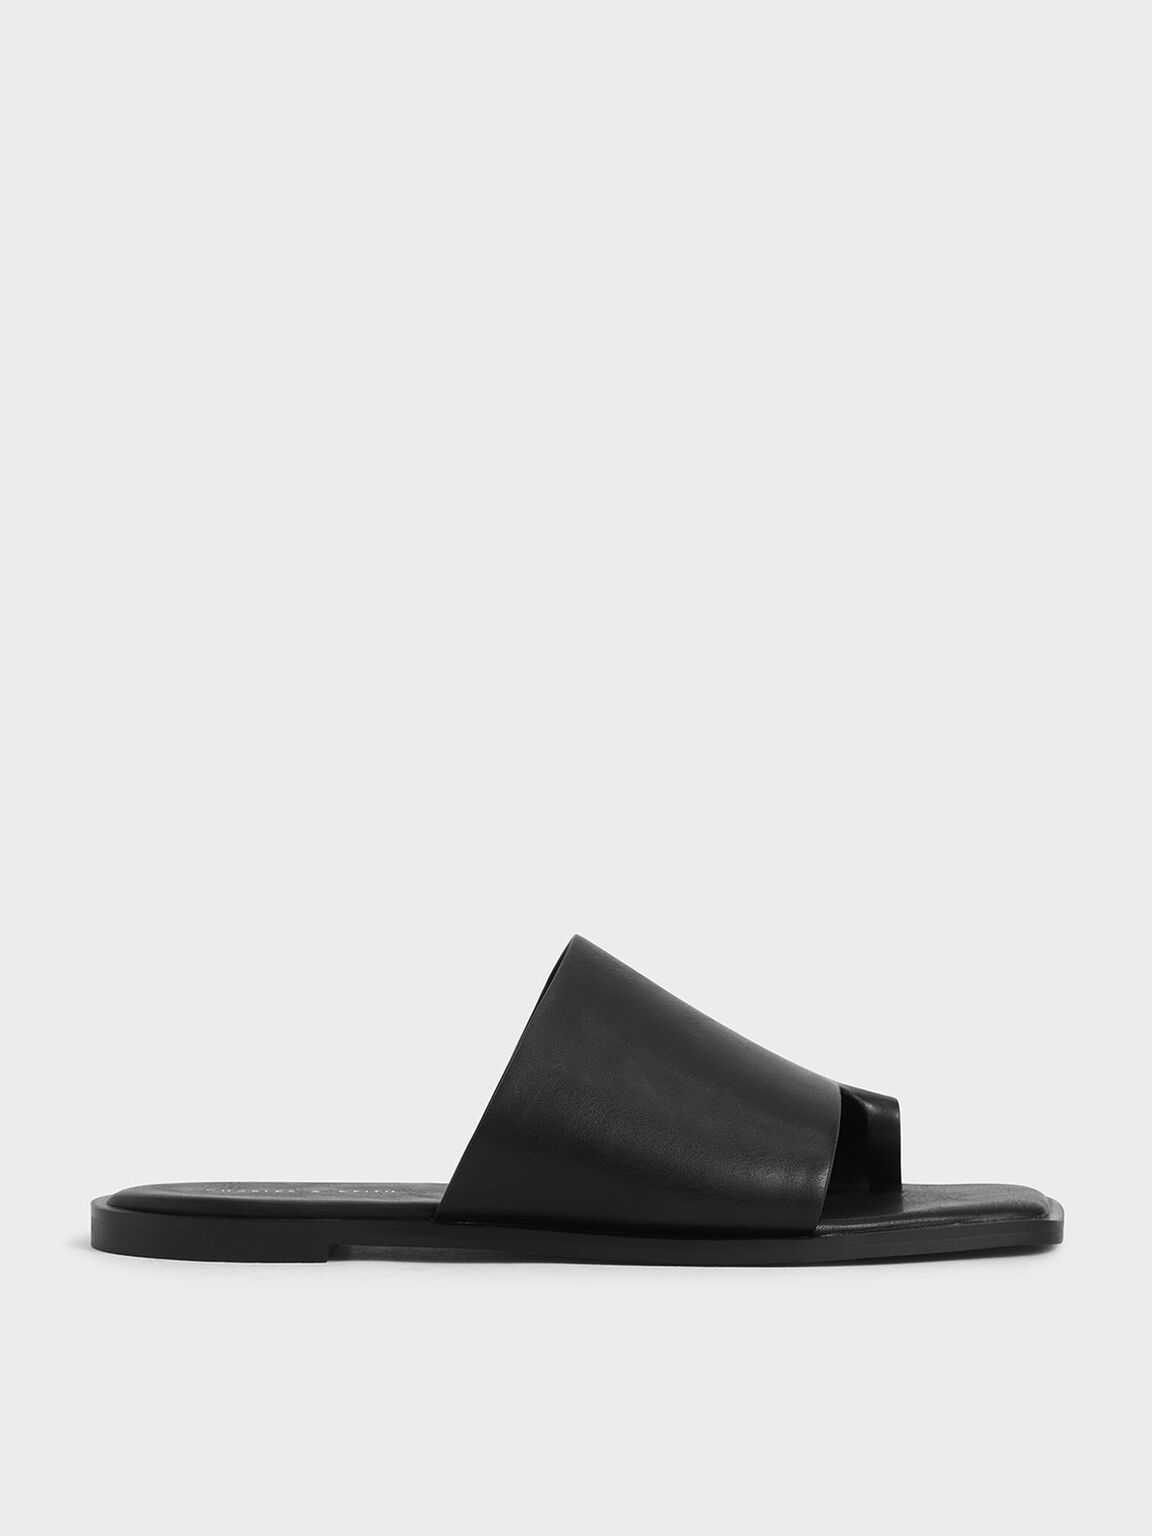 shop charles&keith shoes